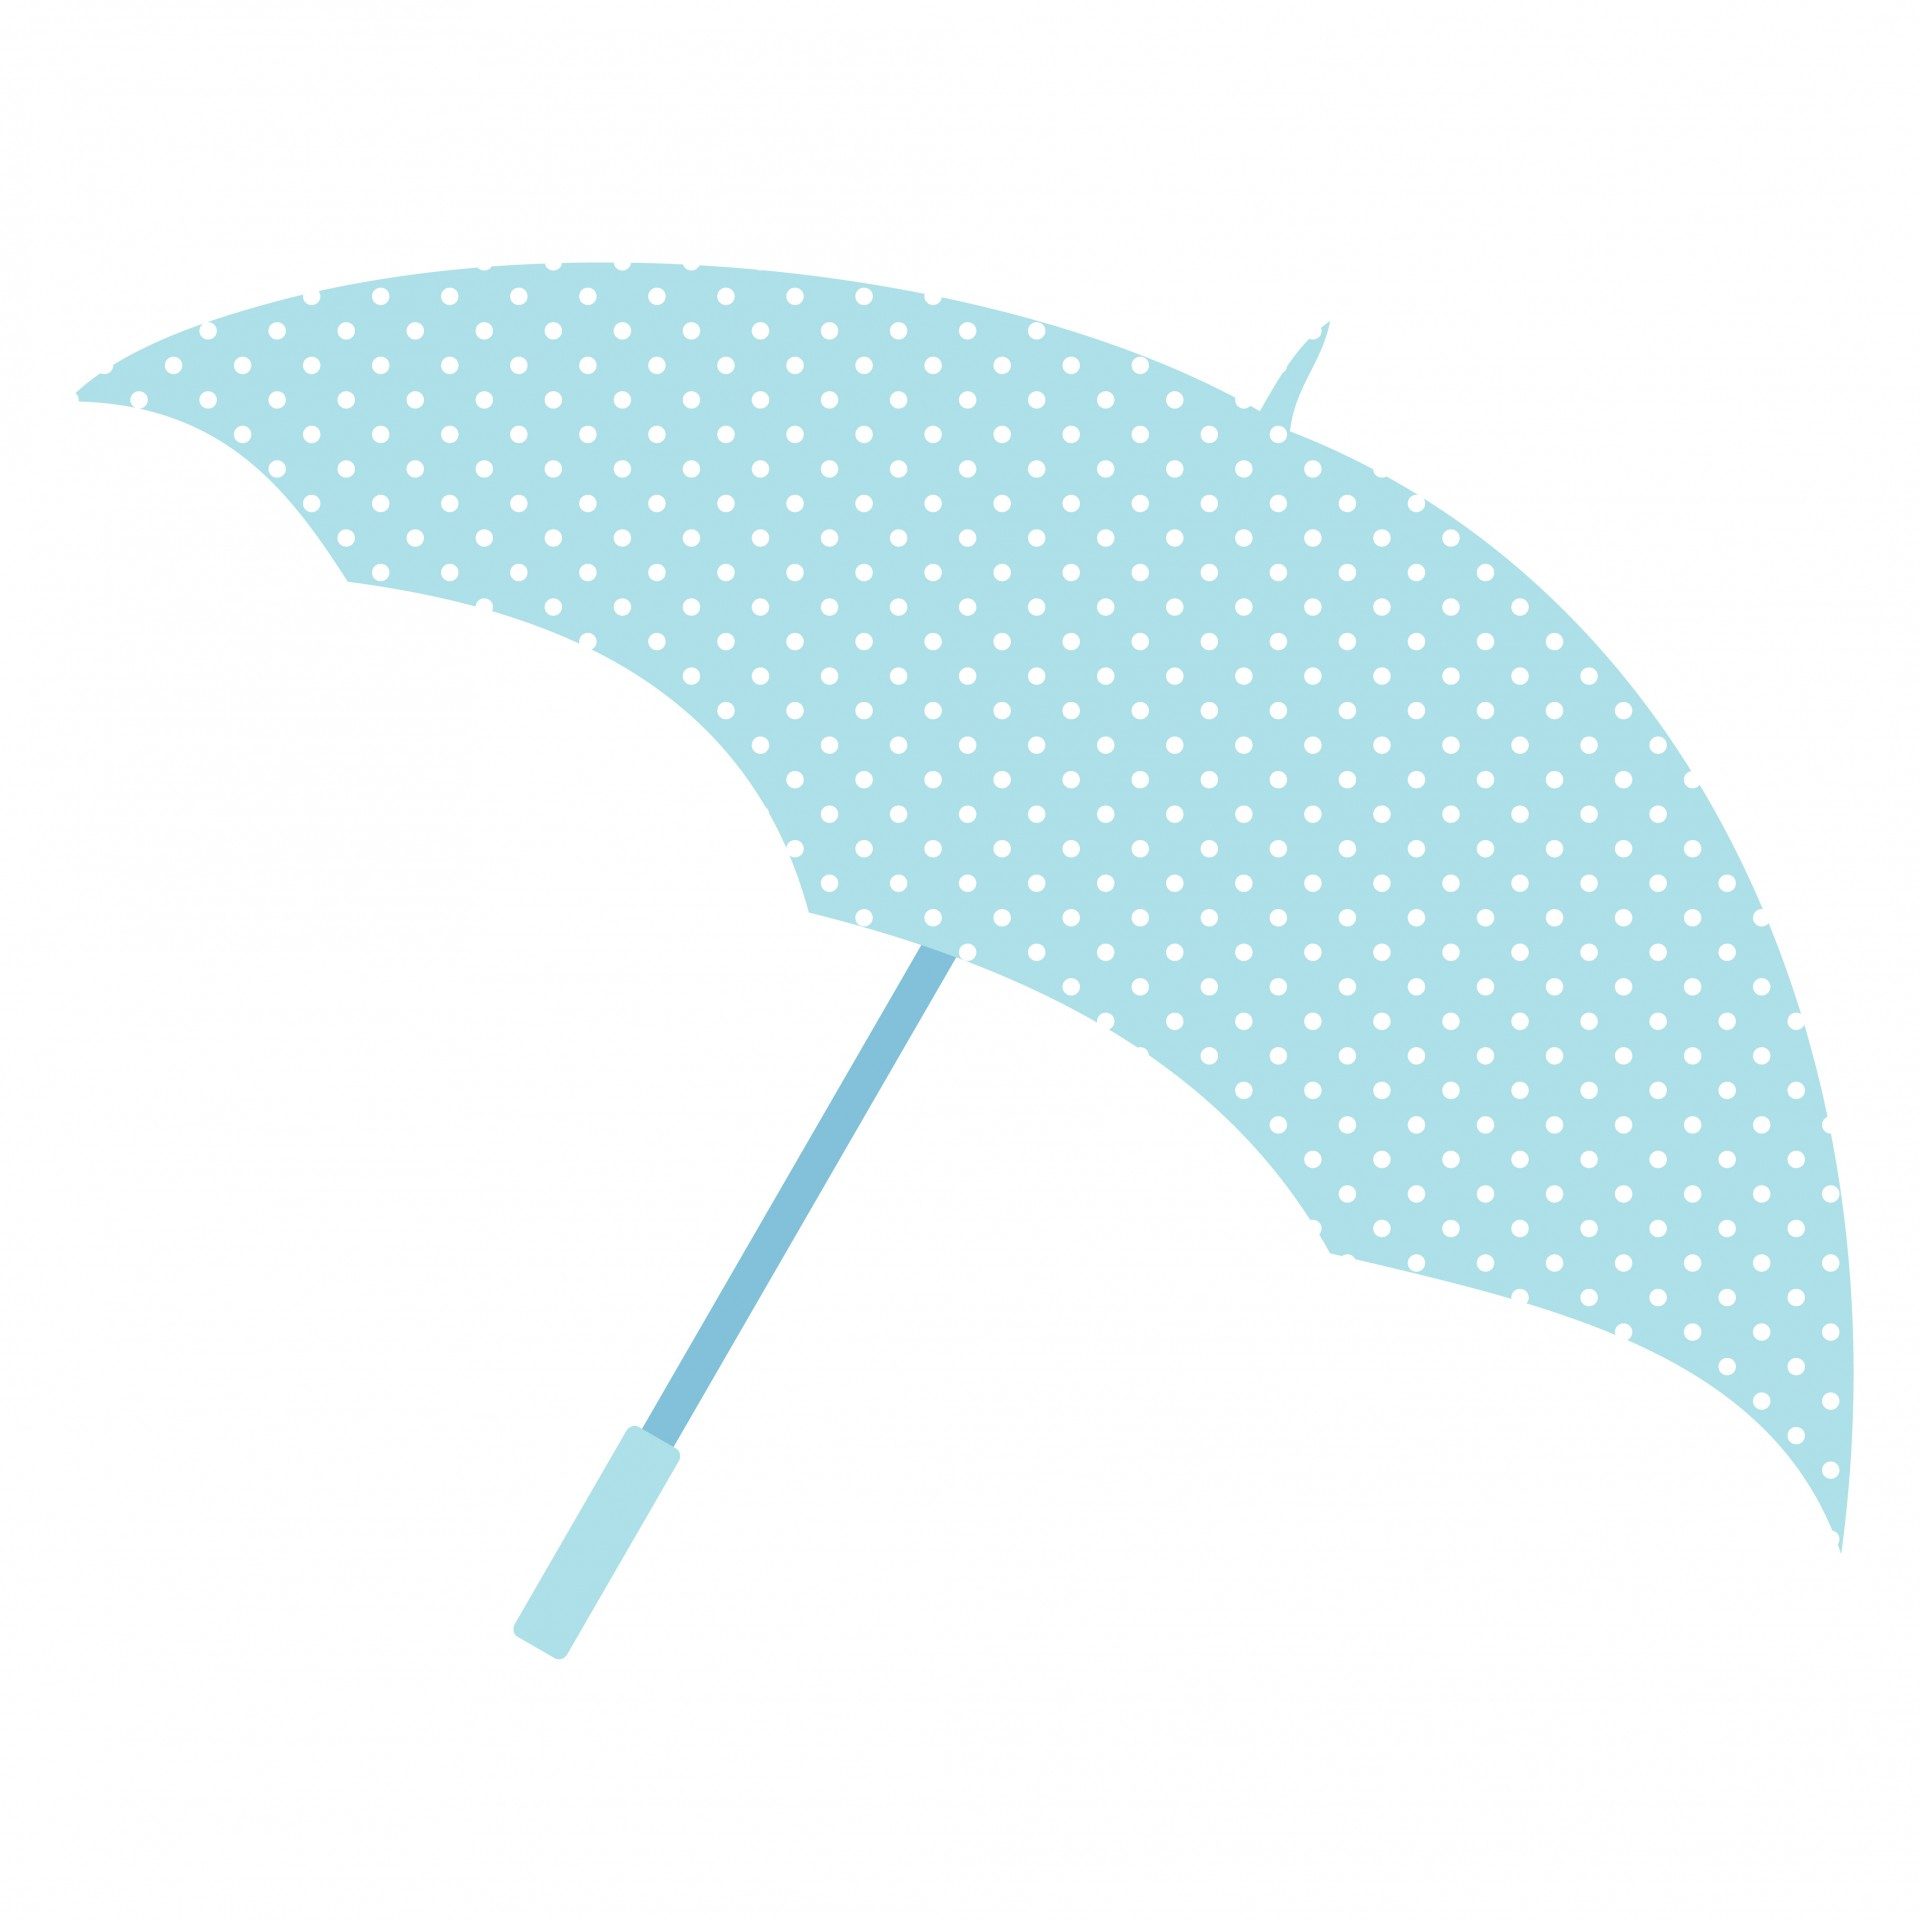 Umbrella clipart unbrella. Free stock photo public